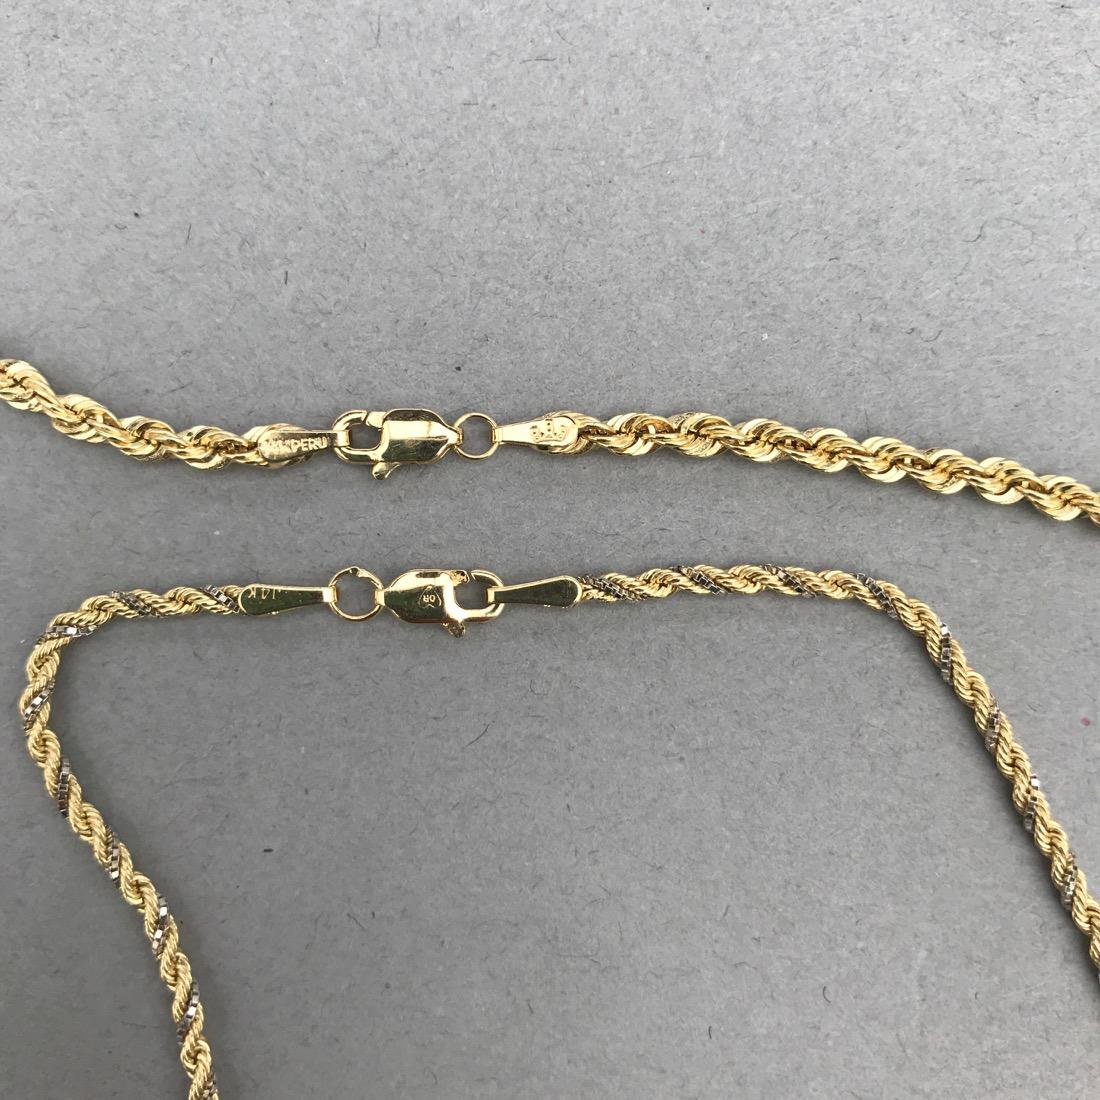 2 14K Gold Twisted Chain Necklaces - 2